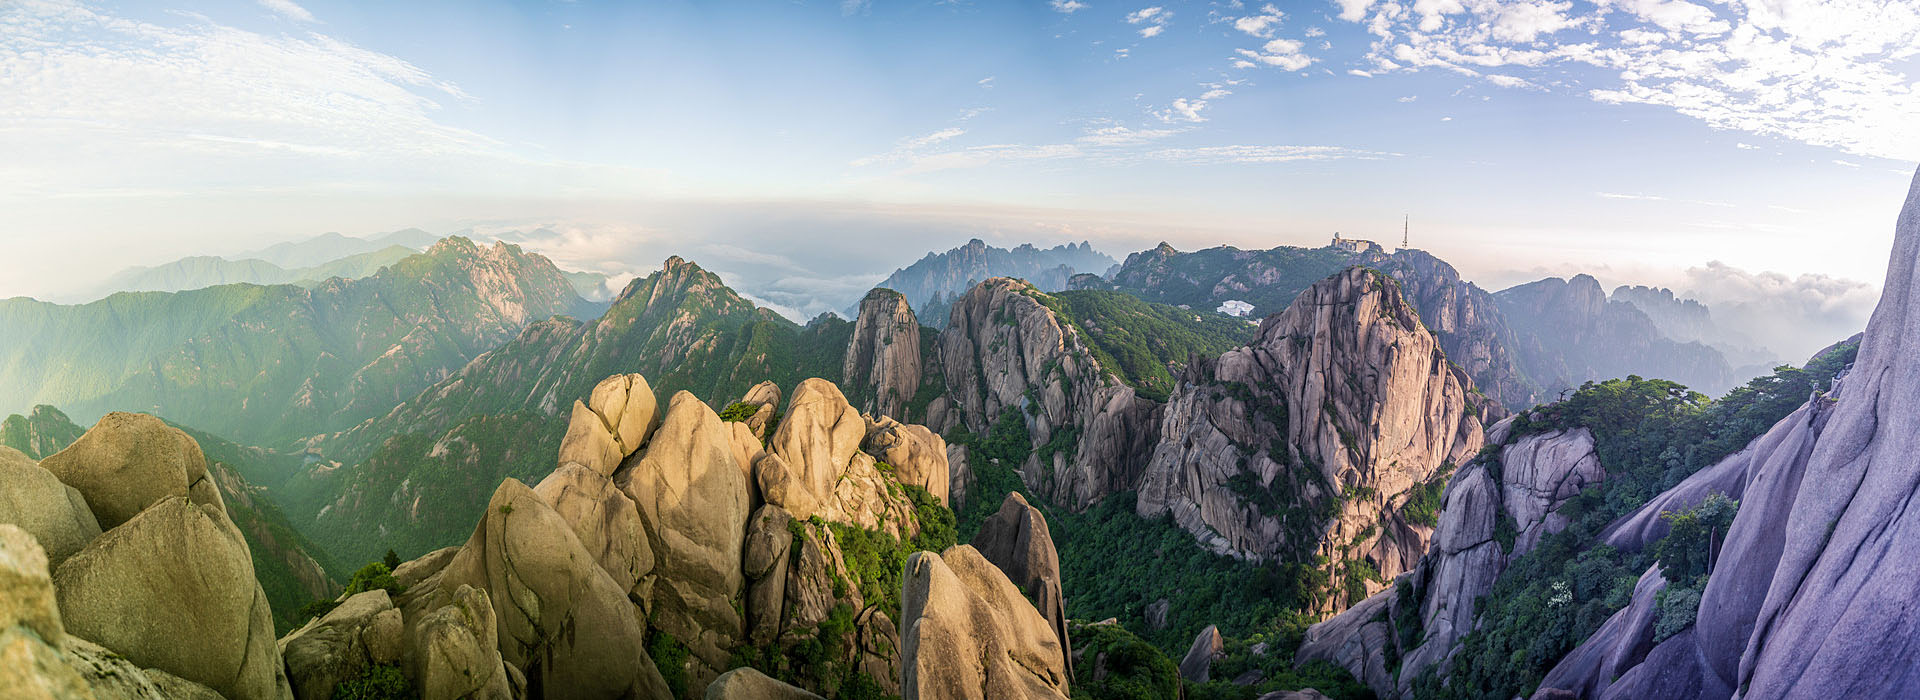 Photography Tour in Guilin and Huangshan